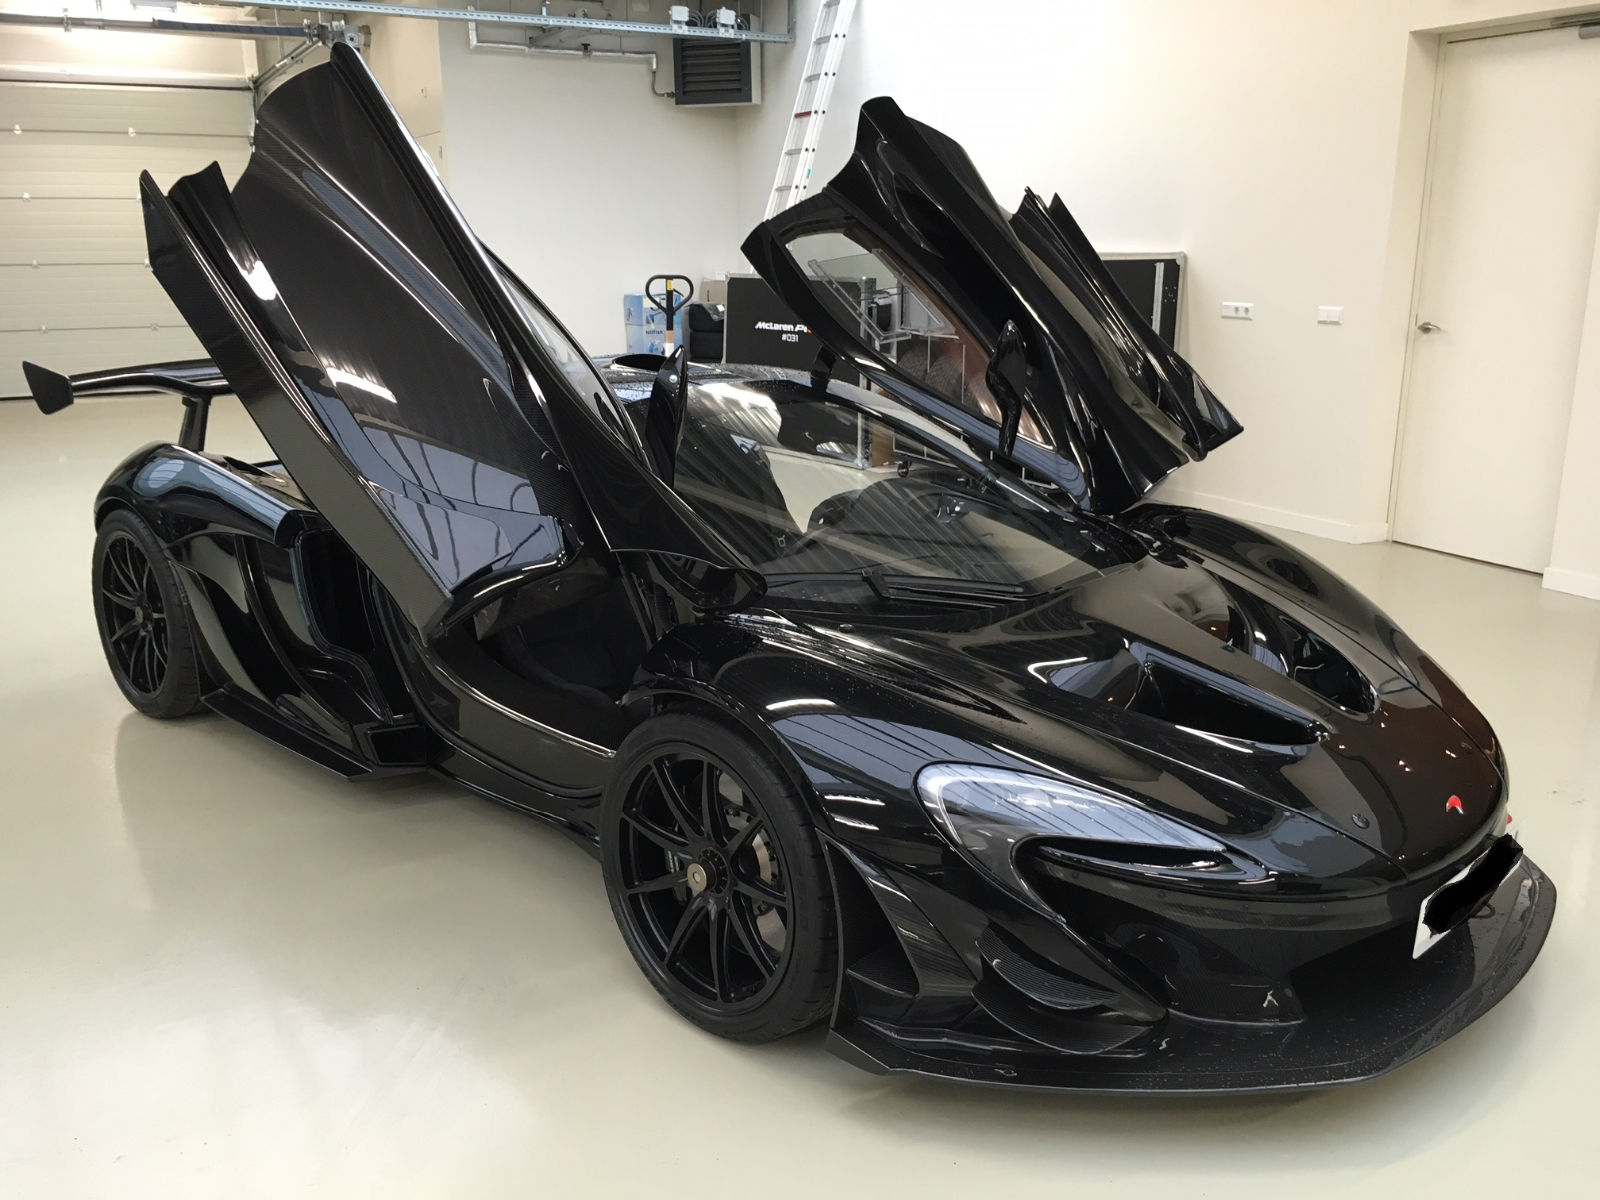 road legal mclaren p1 gtr for sale at 4 3 million in holland gtspirit. Black Bedroom Furniture Sets. Home Design Ideas